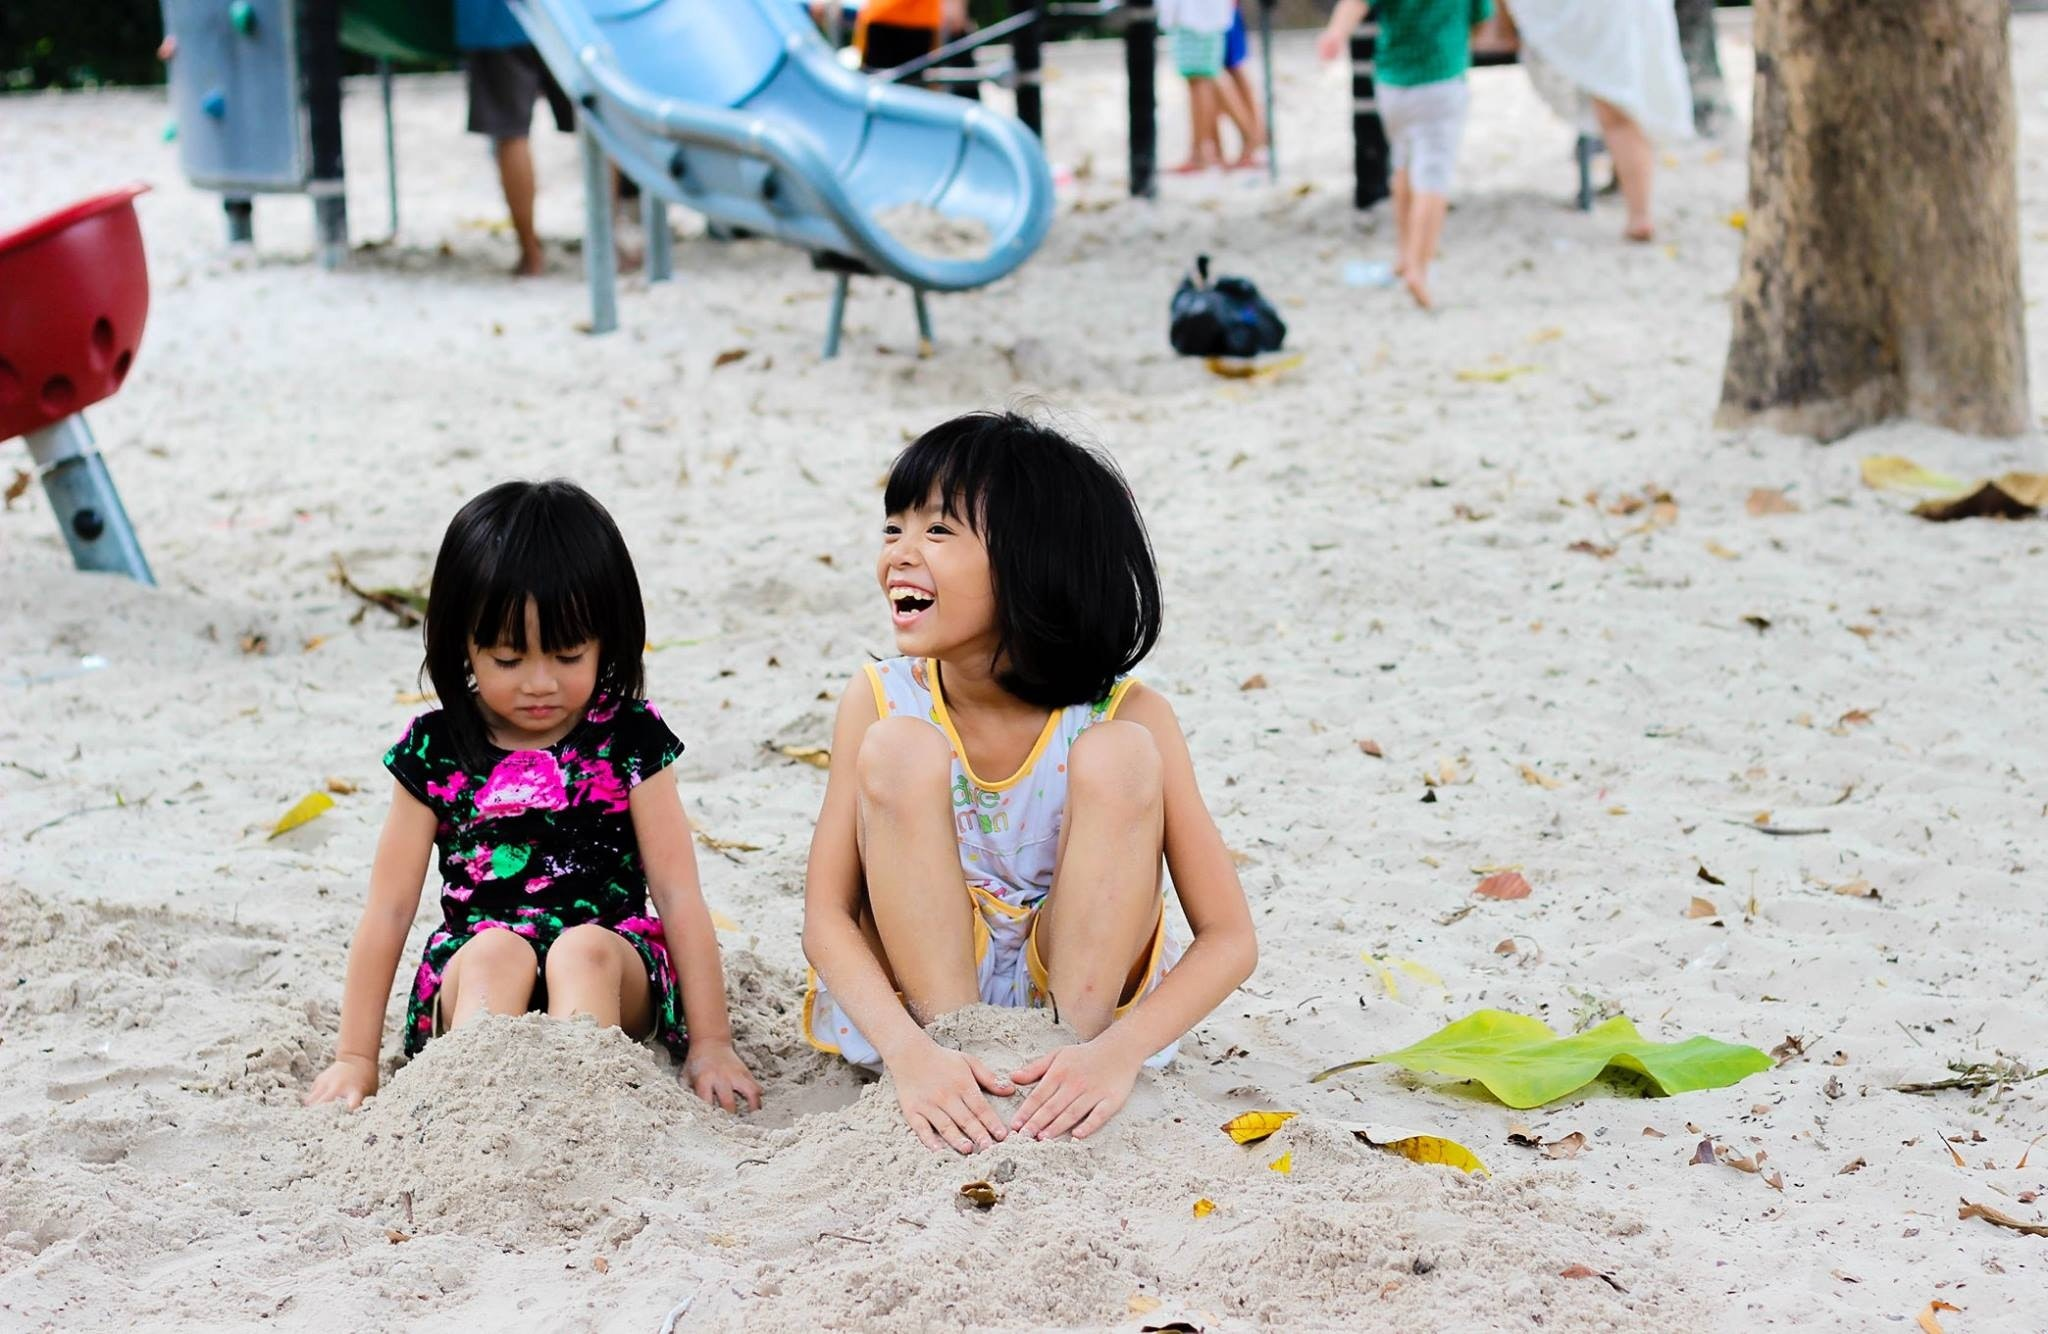 beach-children-cute-160849